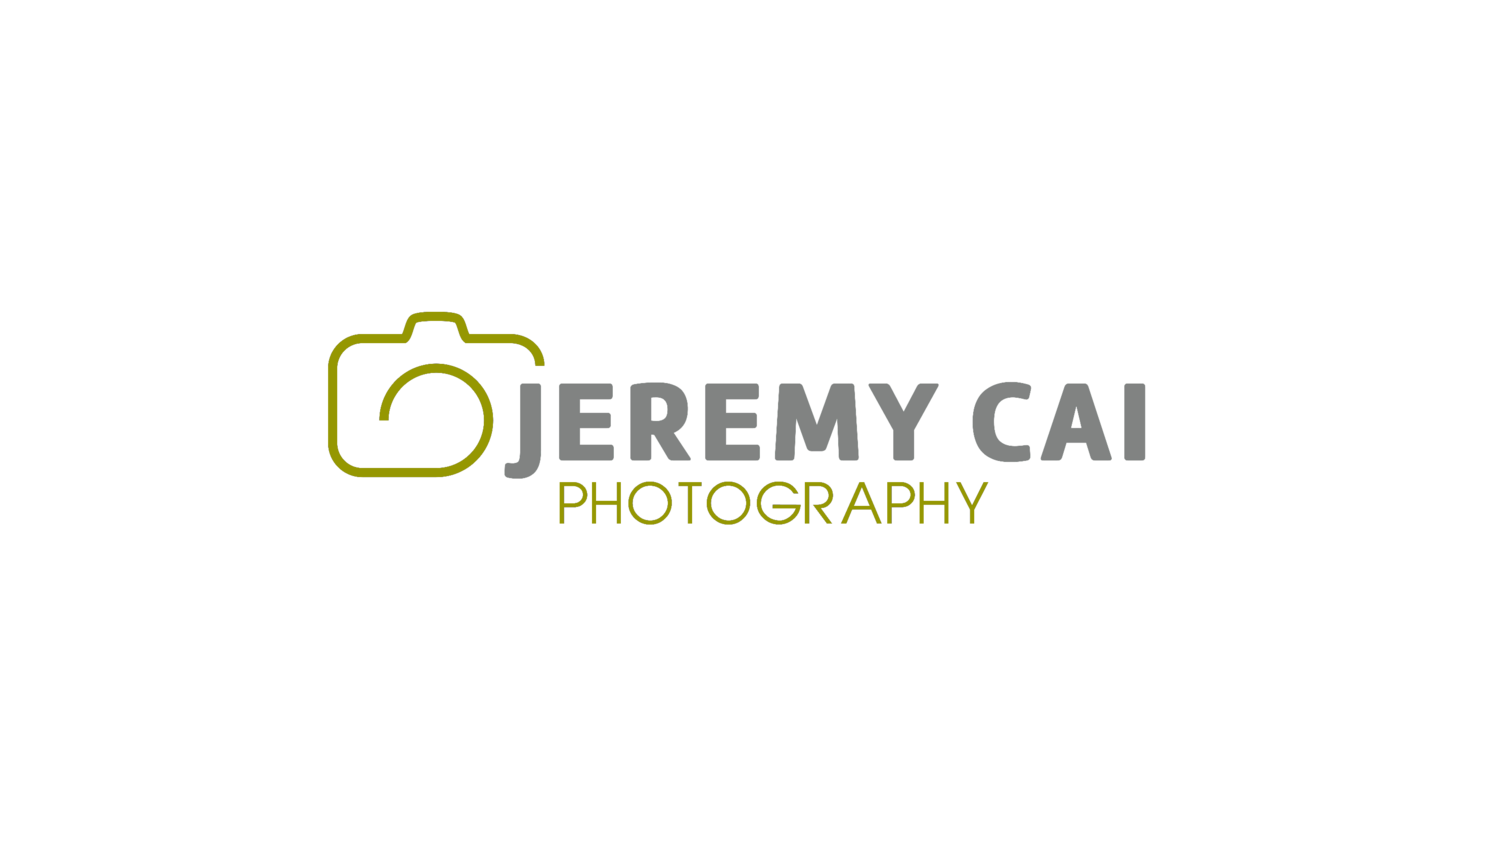 Jeremy Cai Photography